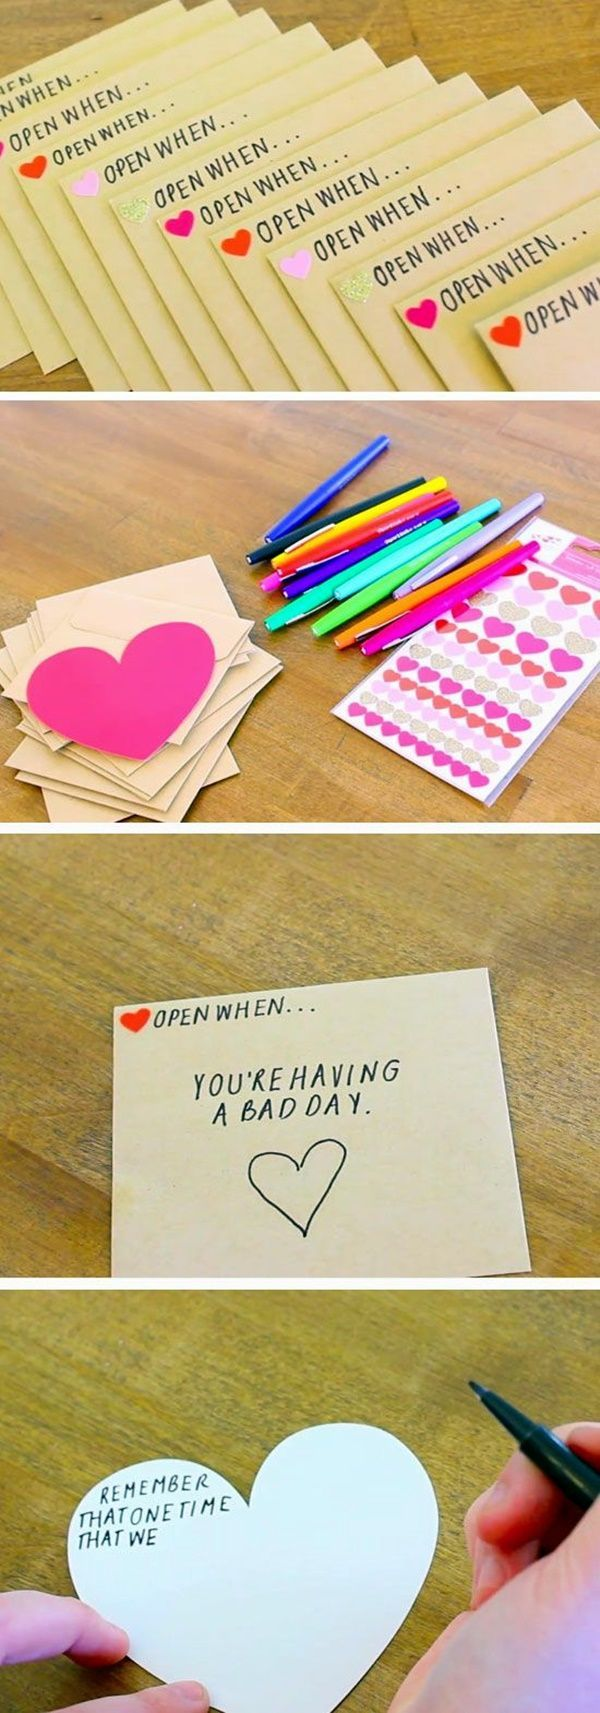 101 Homemade Valentines Day Ideas For Him That Re Really Cute Gift And Relationship Gifts